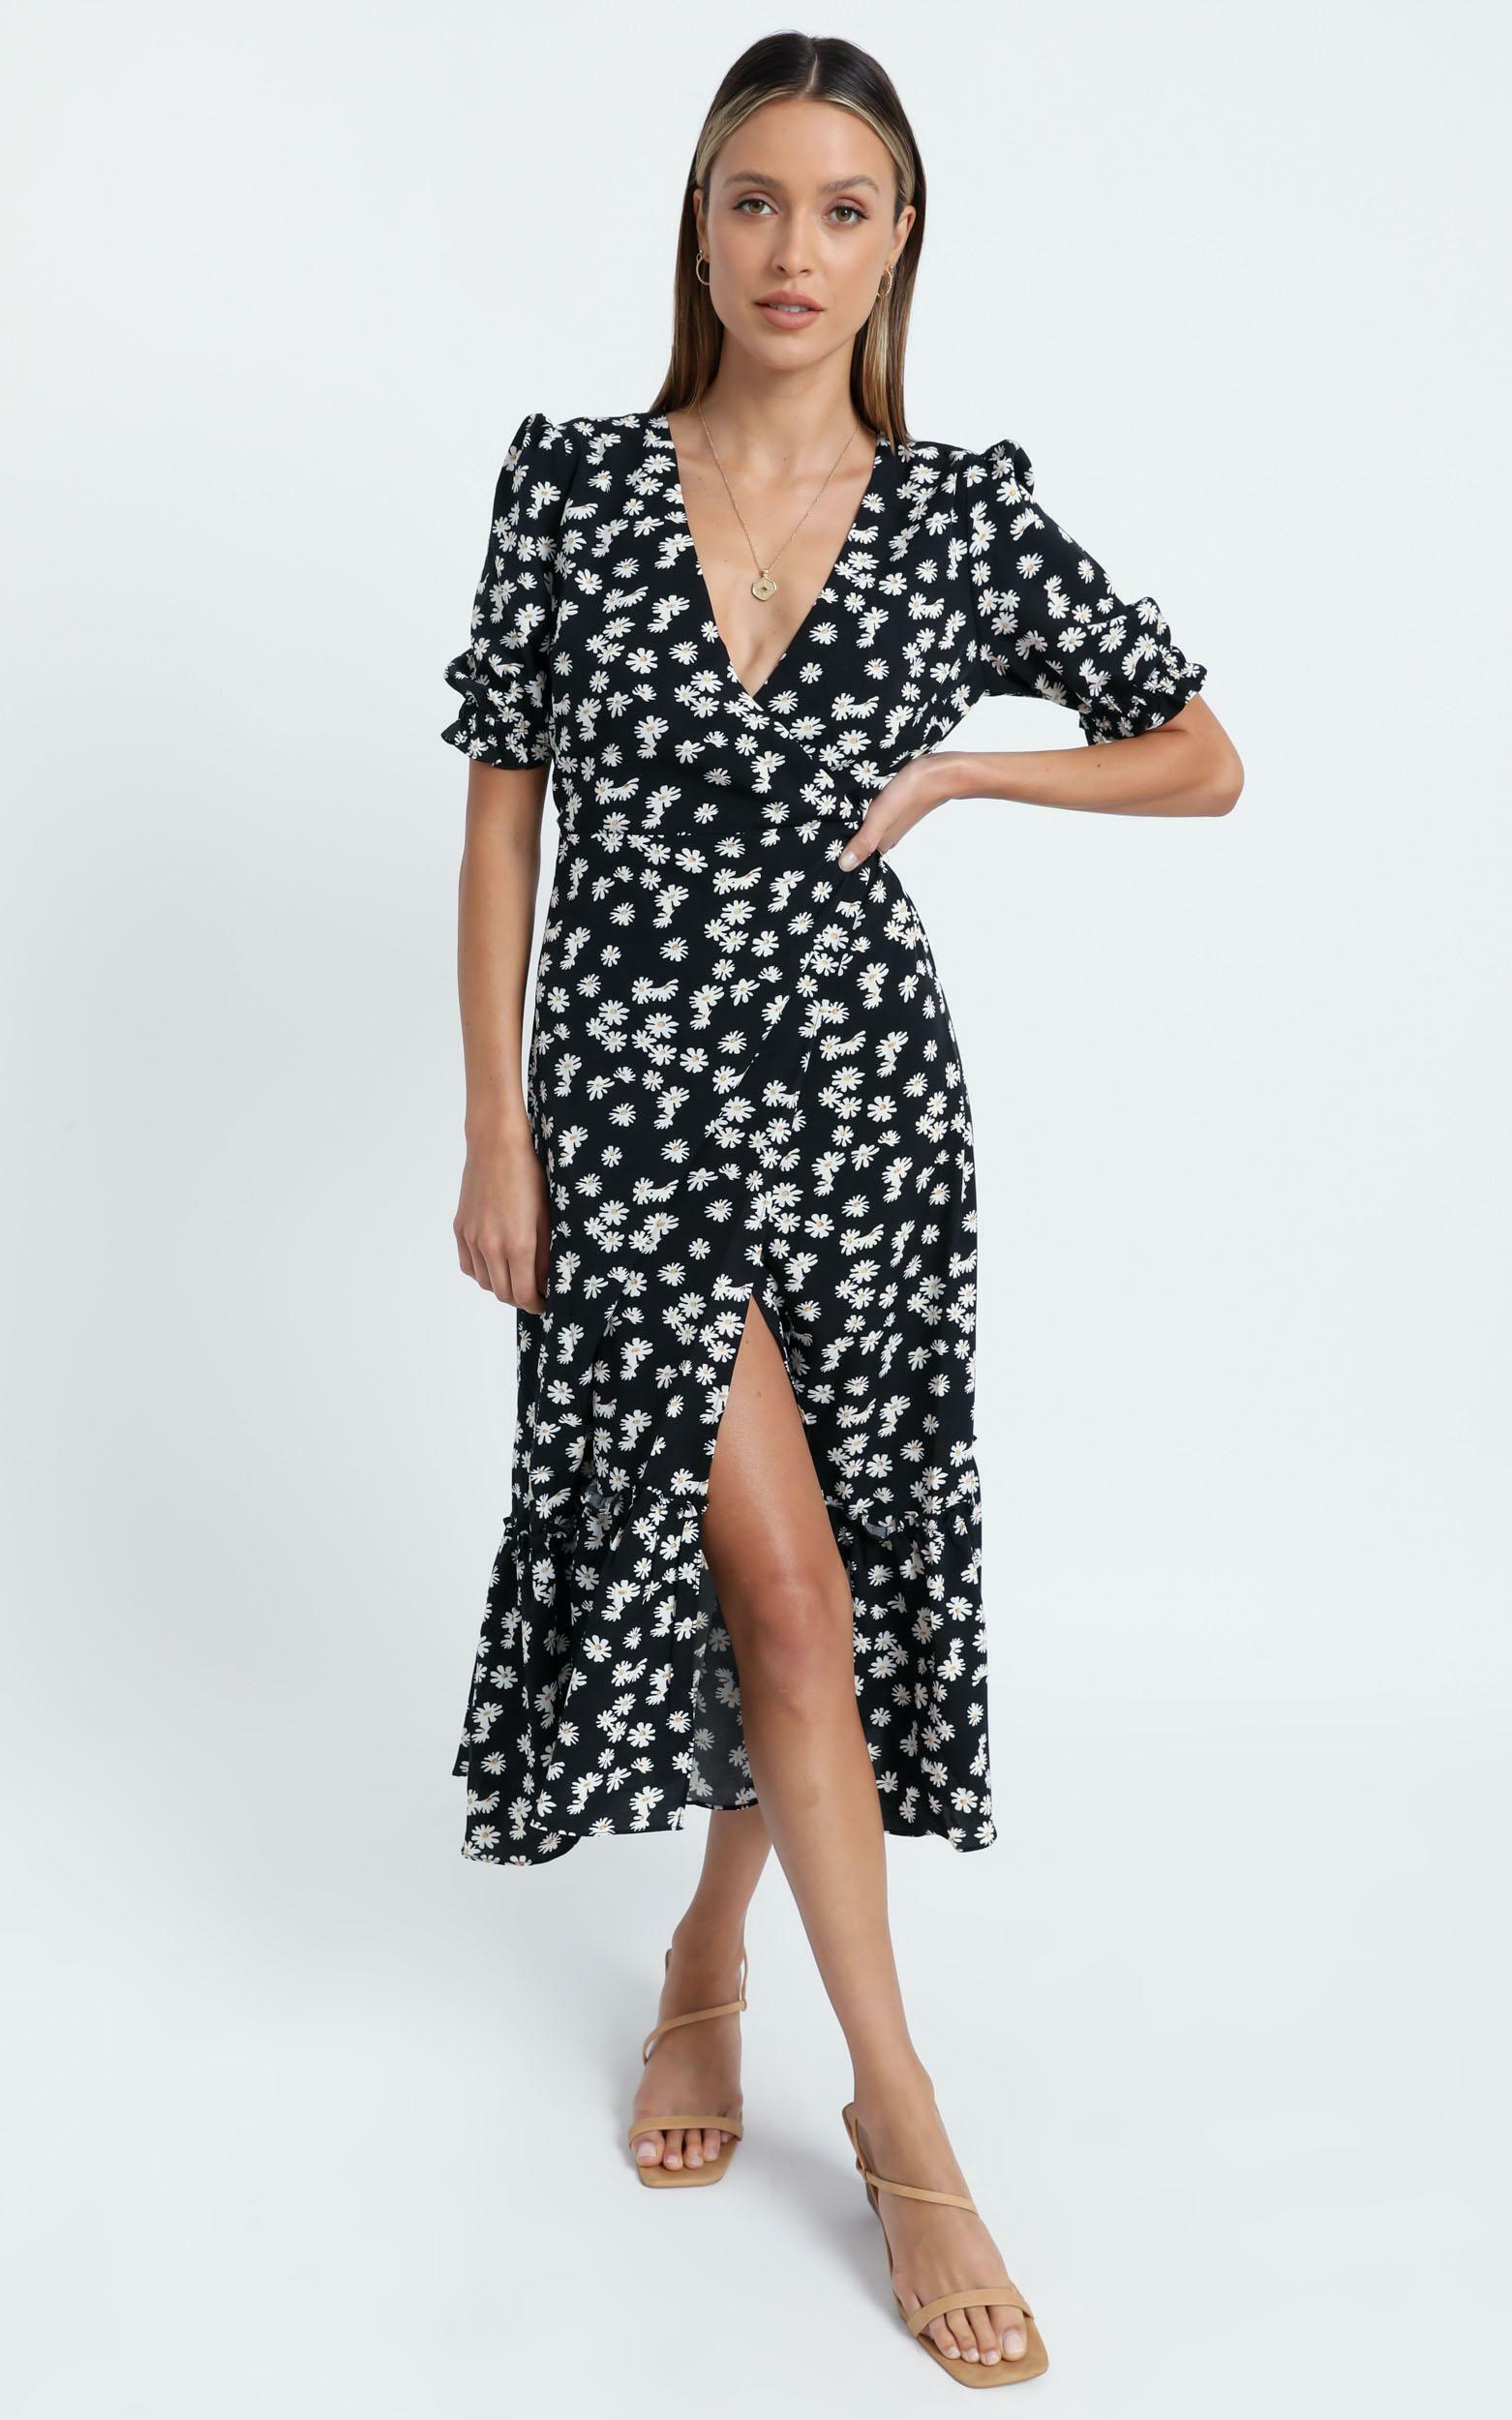 Washington Dress in Black Floral - 6 (XS), BLK13, hi-res image number null